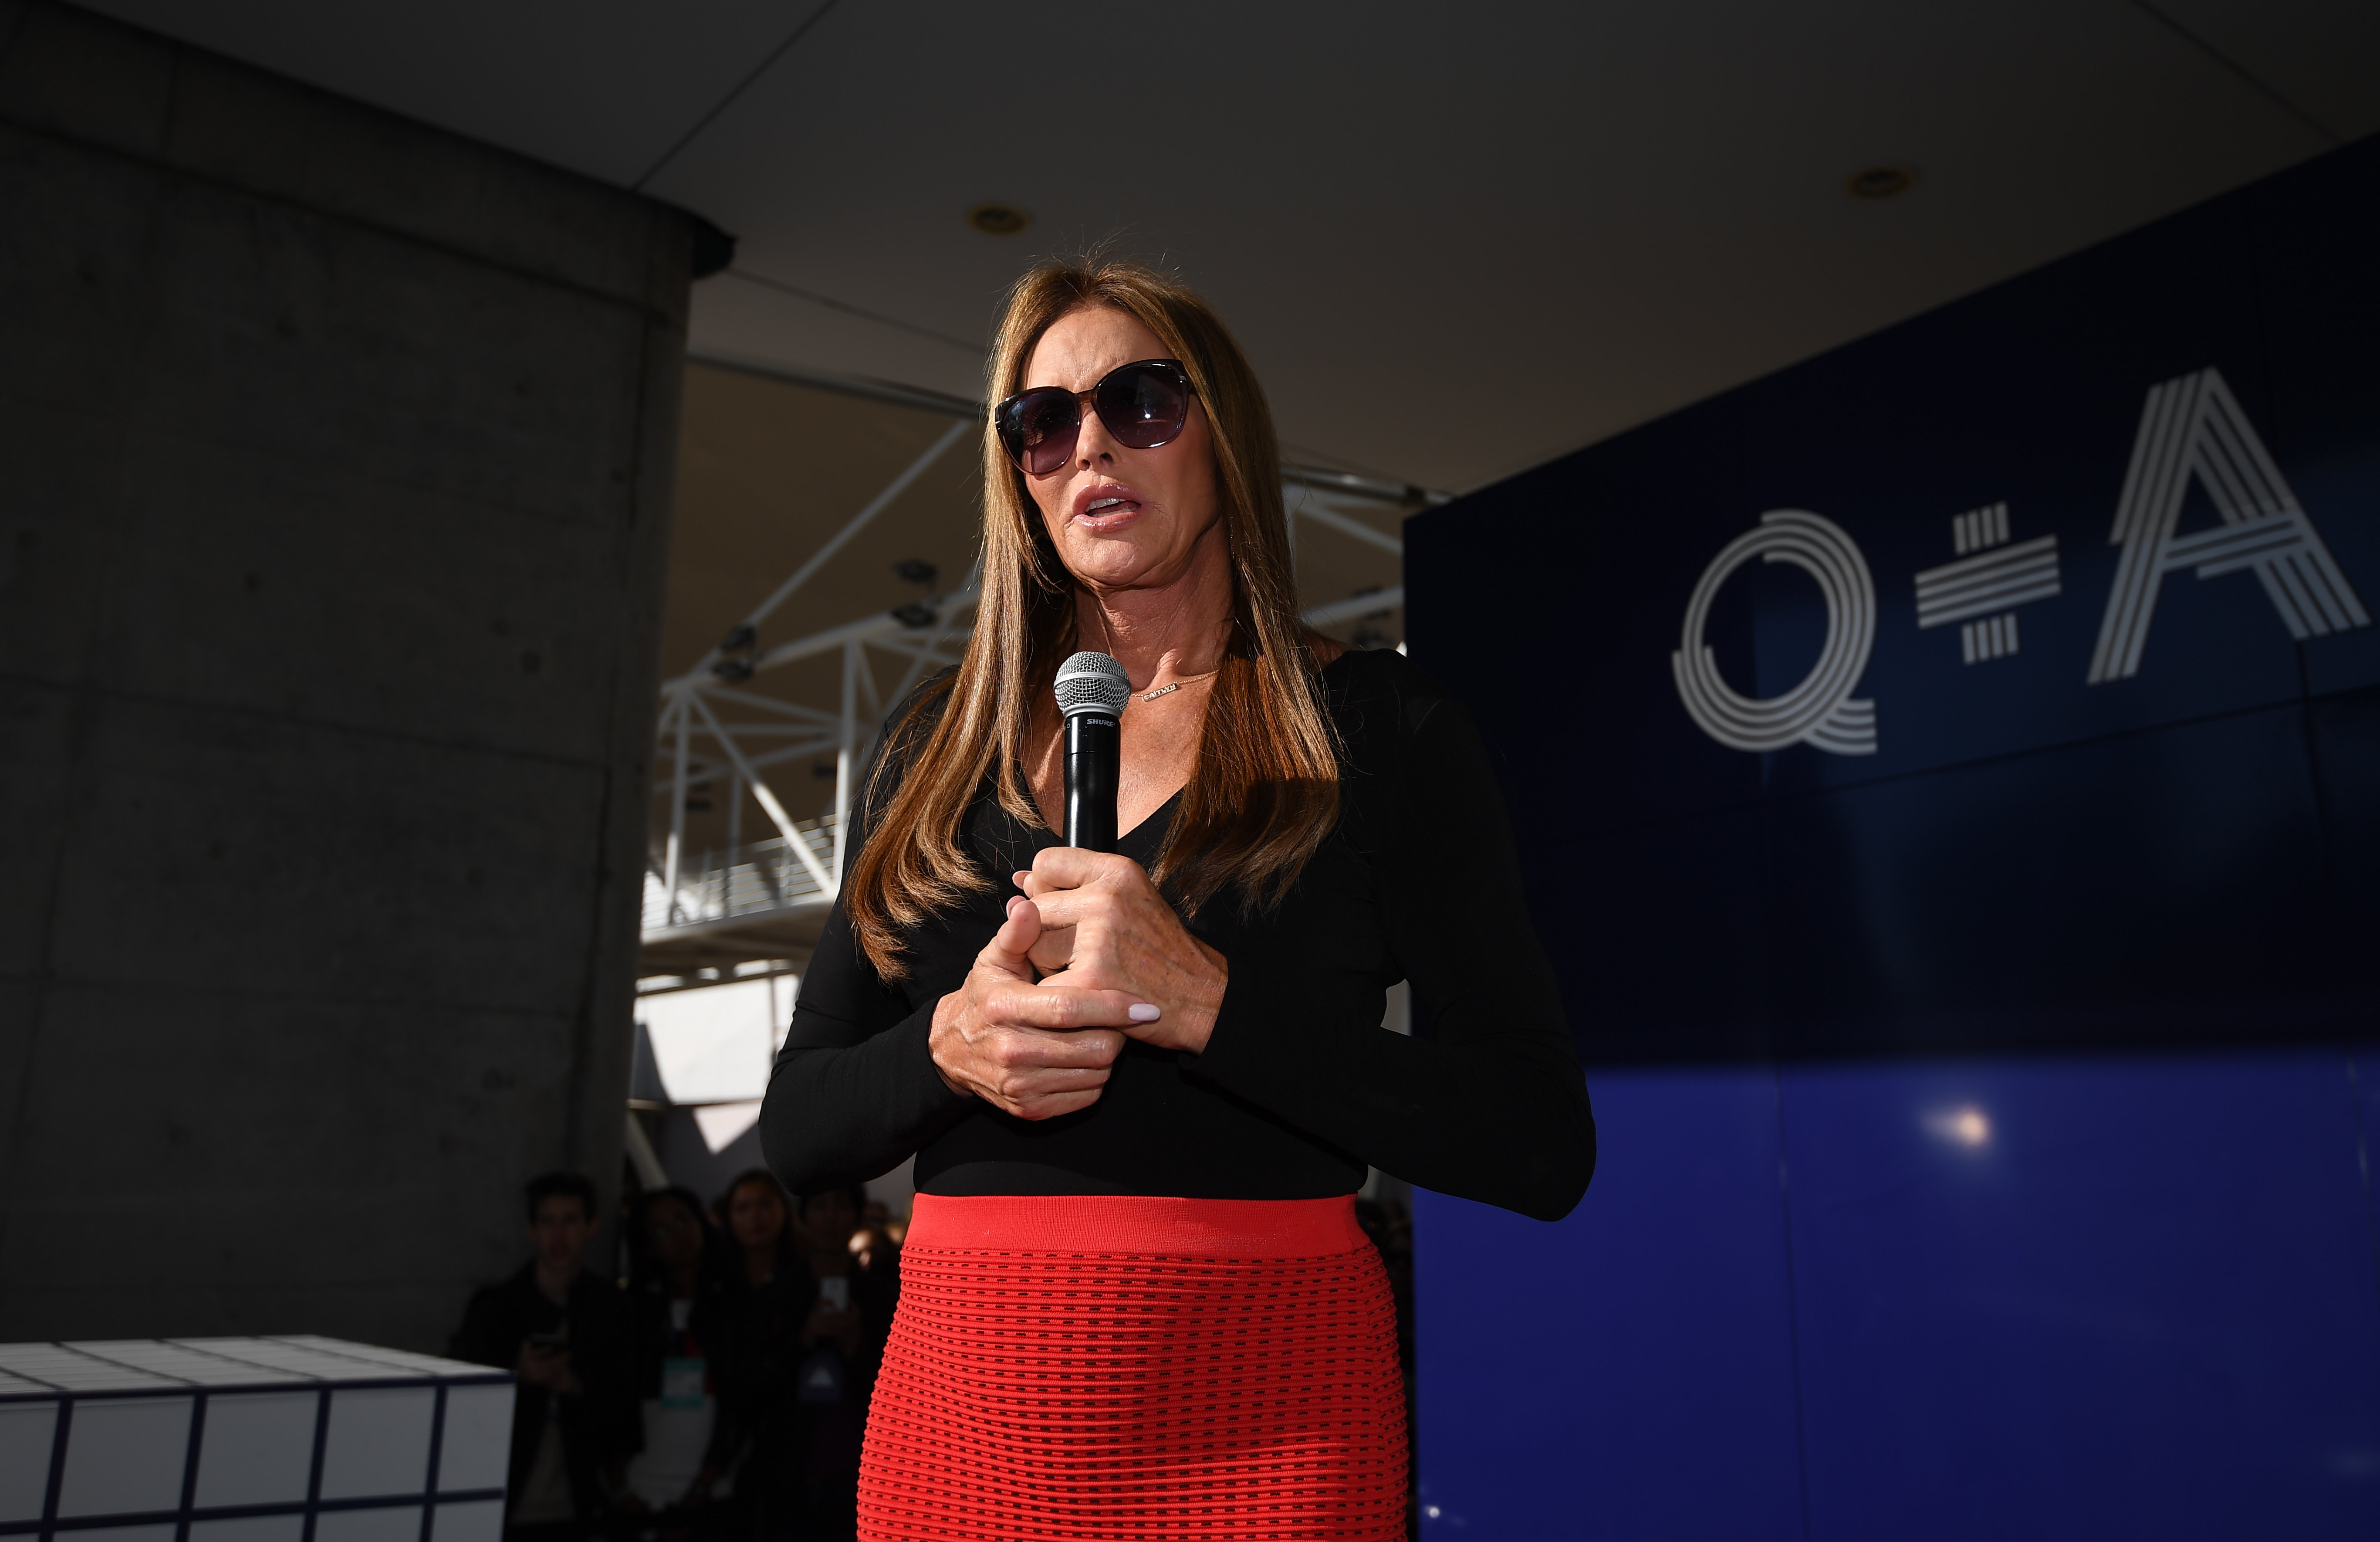 Caitlyn Jenner Web Summit 2017 - Q and A Stage